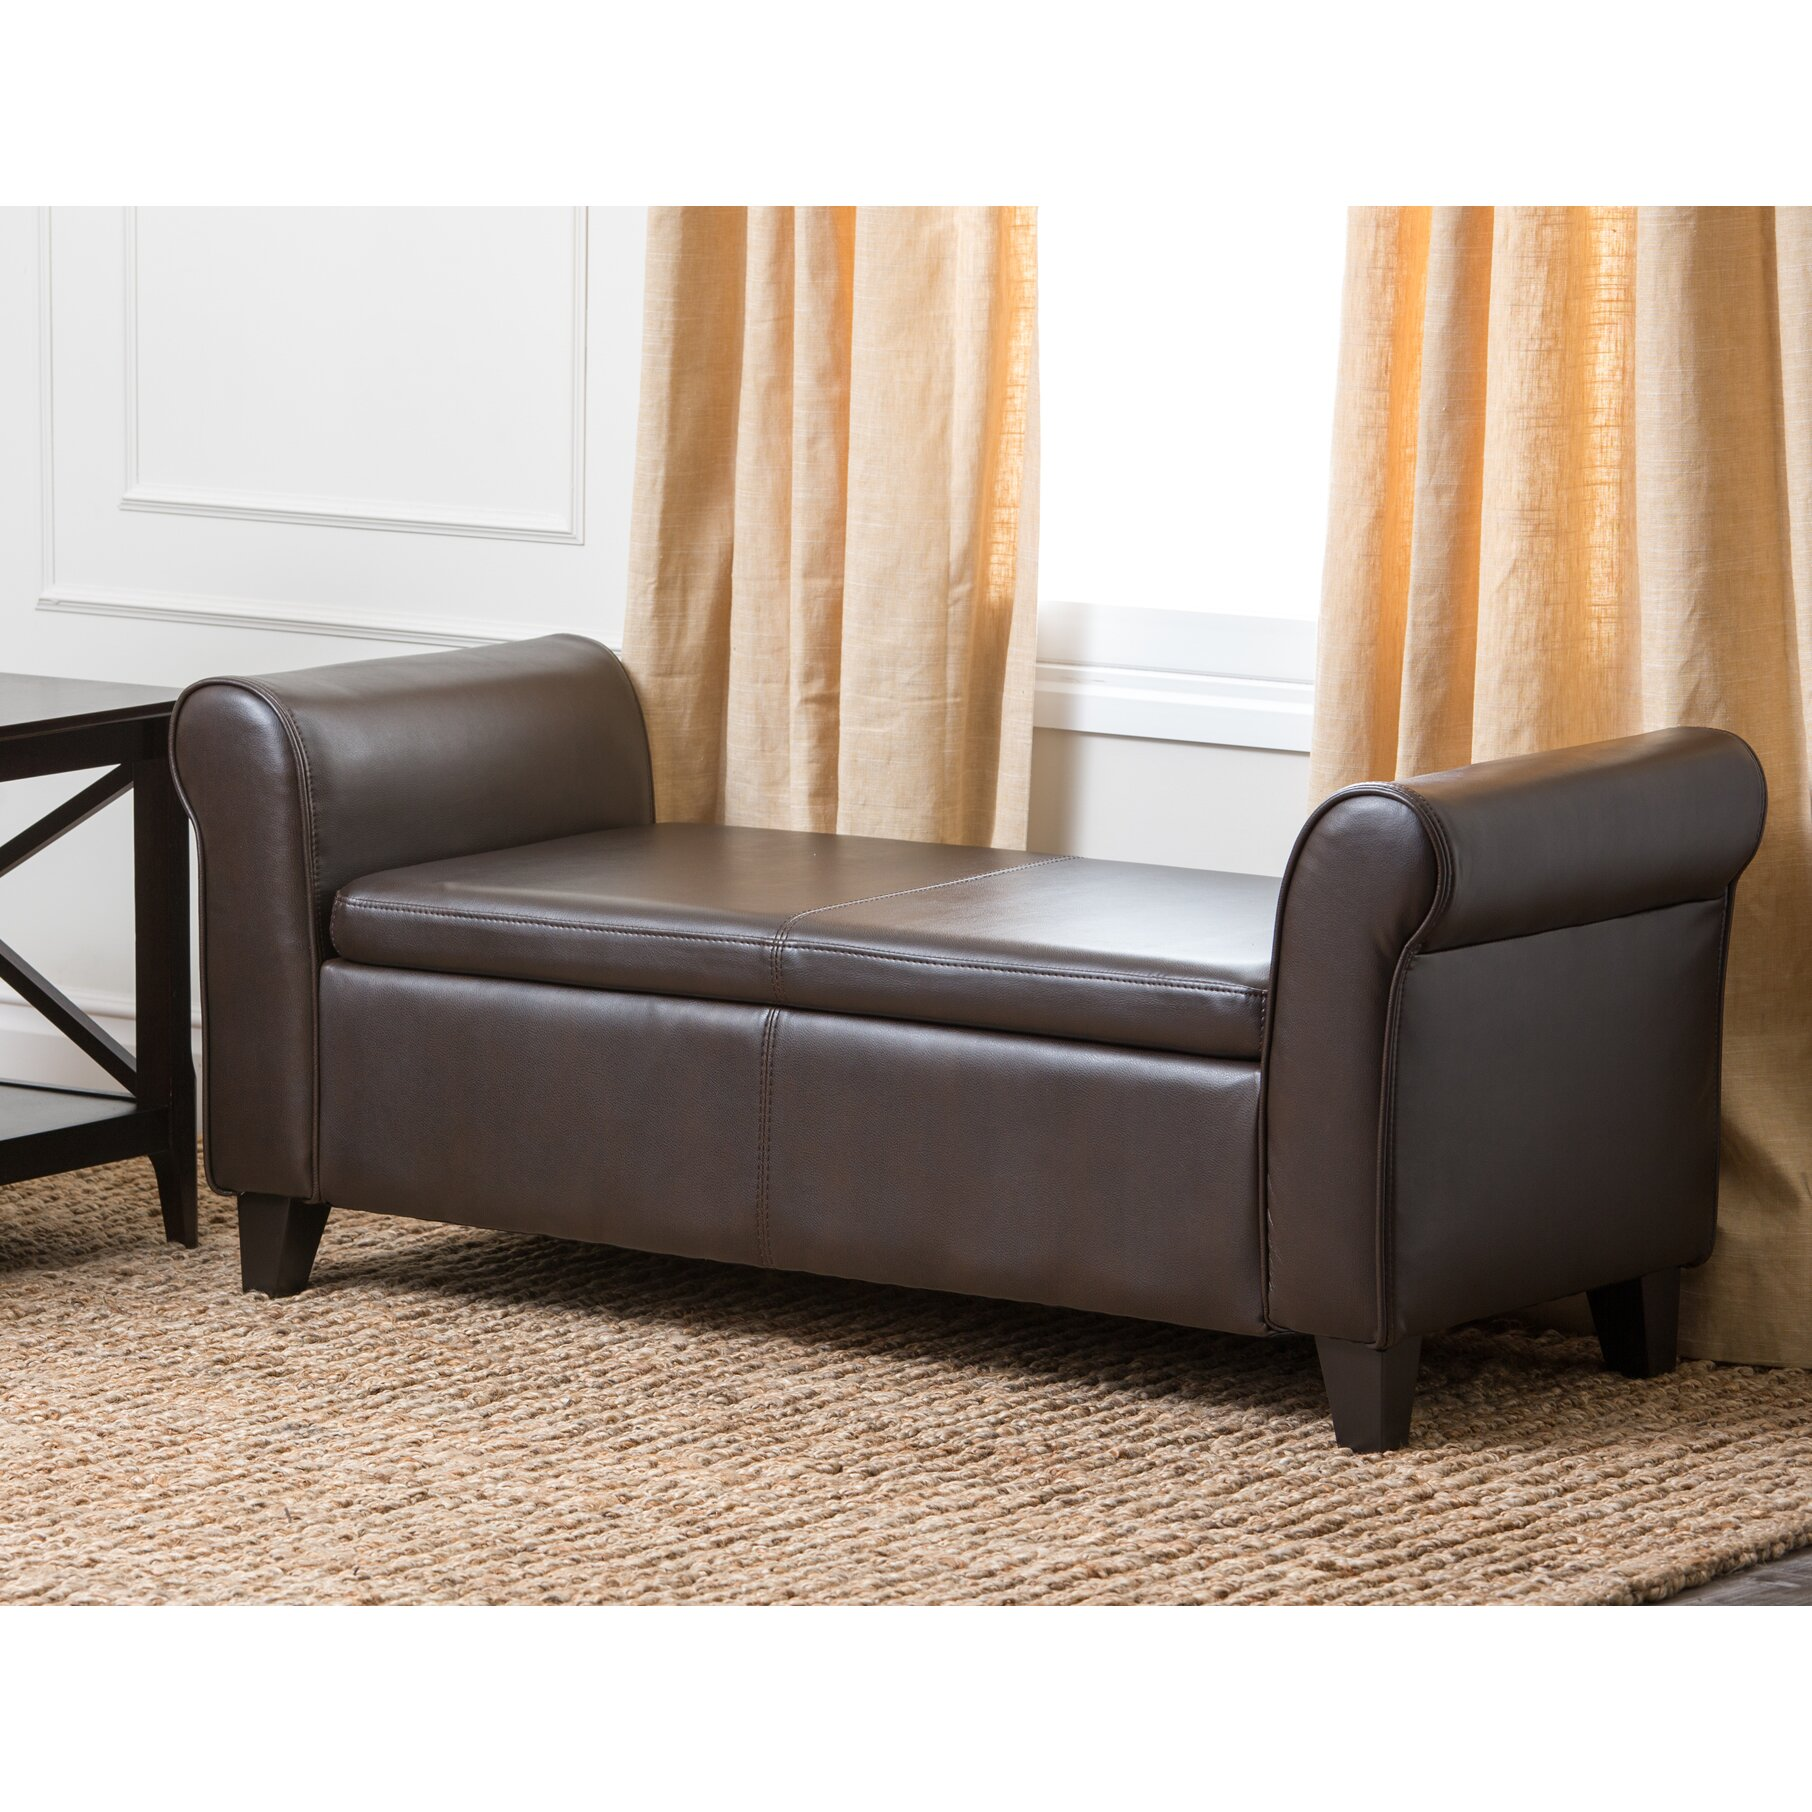 Leather Bedroom Bench Darby Home Co Fabric Storage Bedroom Bench Reviews Wayfair